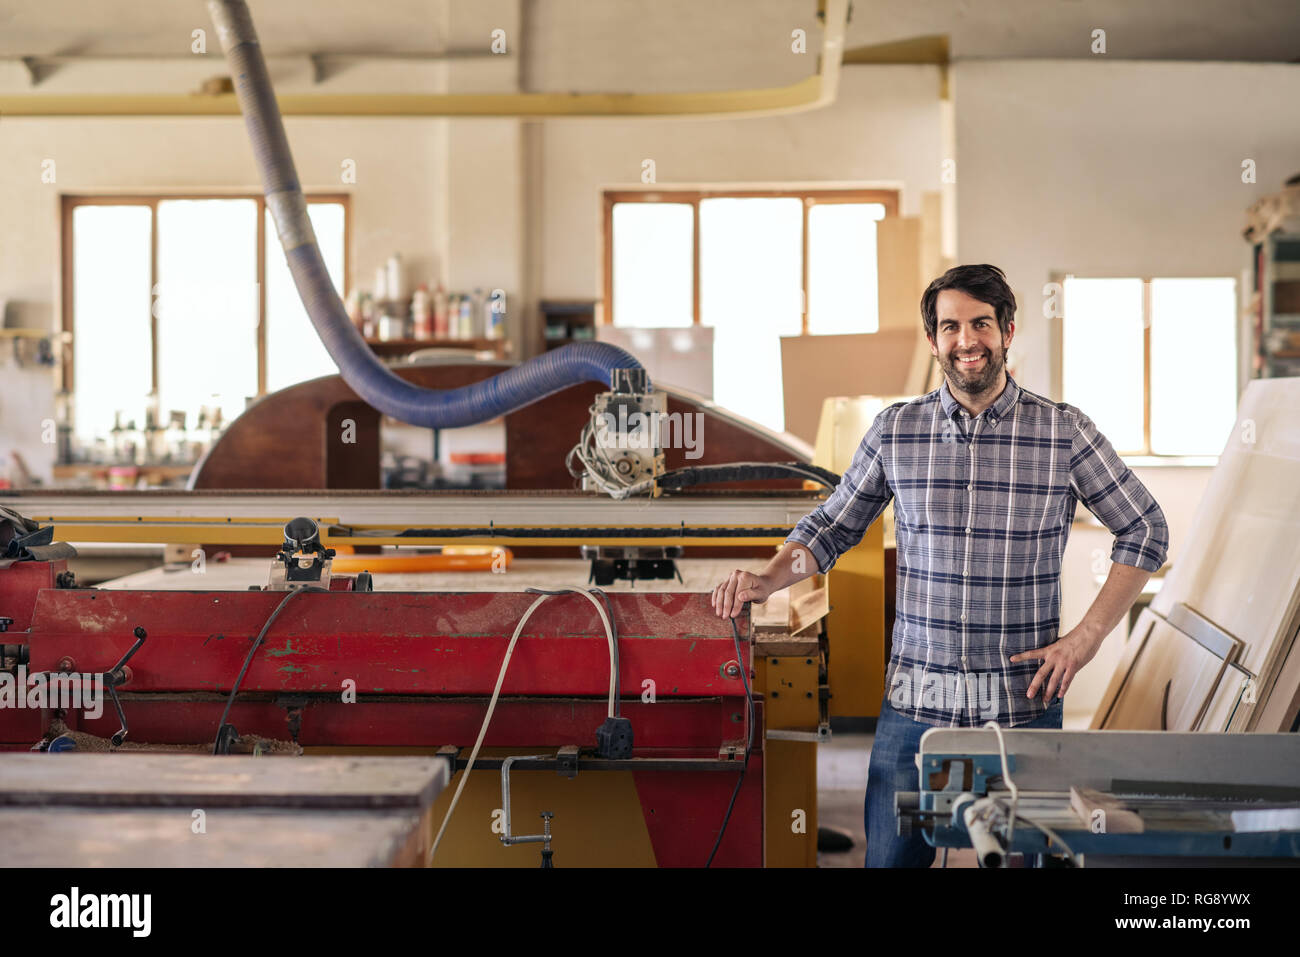 Smiling woodworker standing by equipment in his workshop - Stock Image